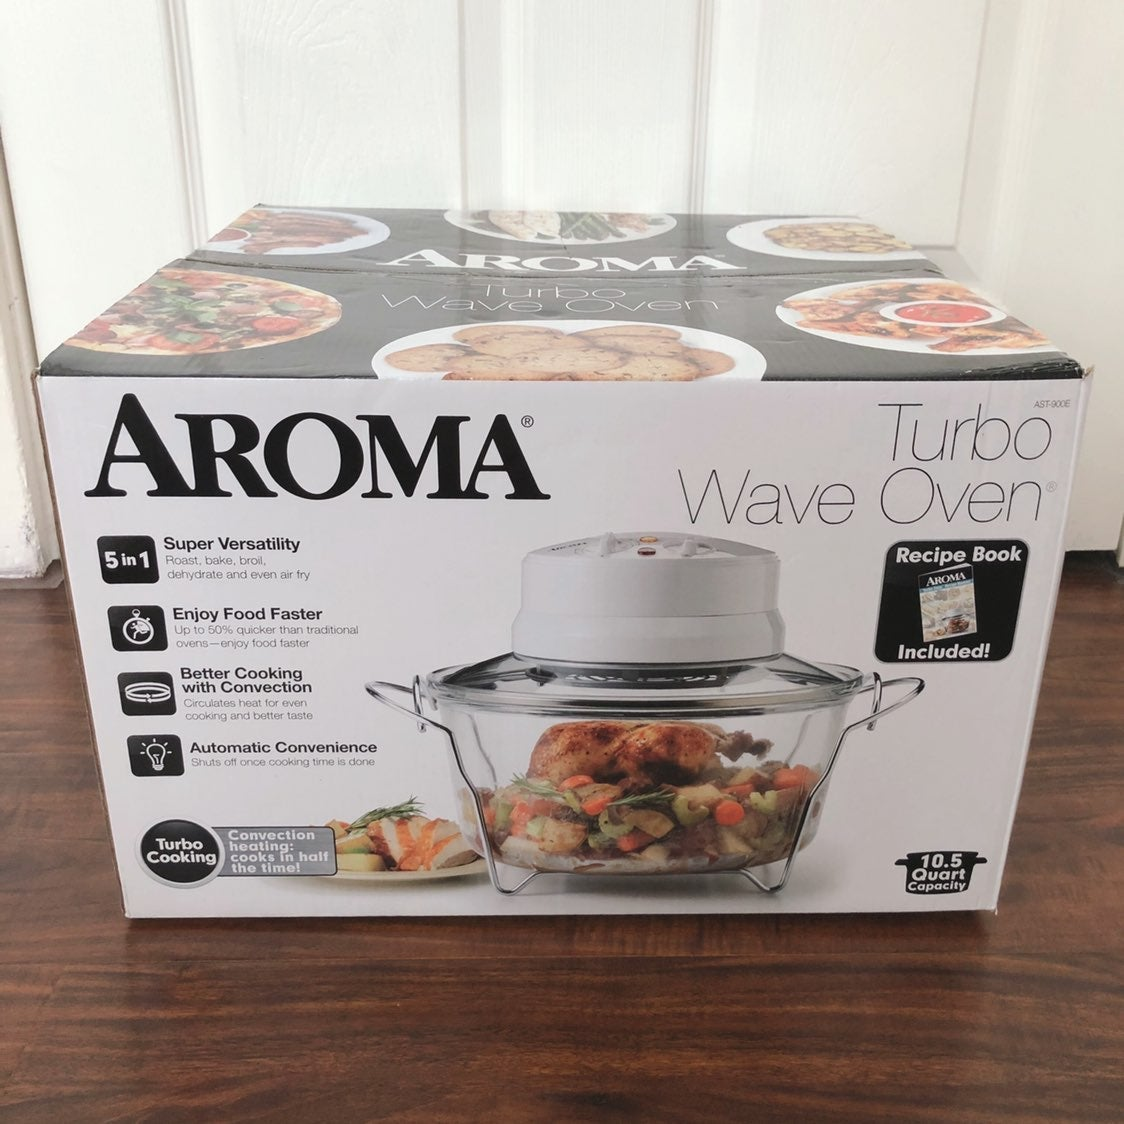 Aroma AeroMatic Air Fryer + Wave Oven